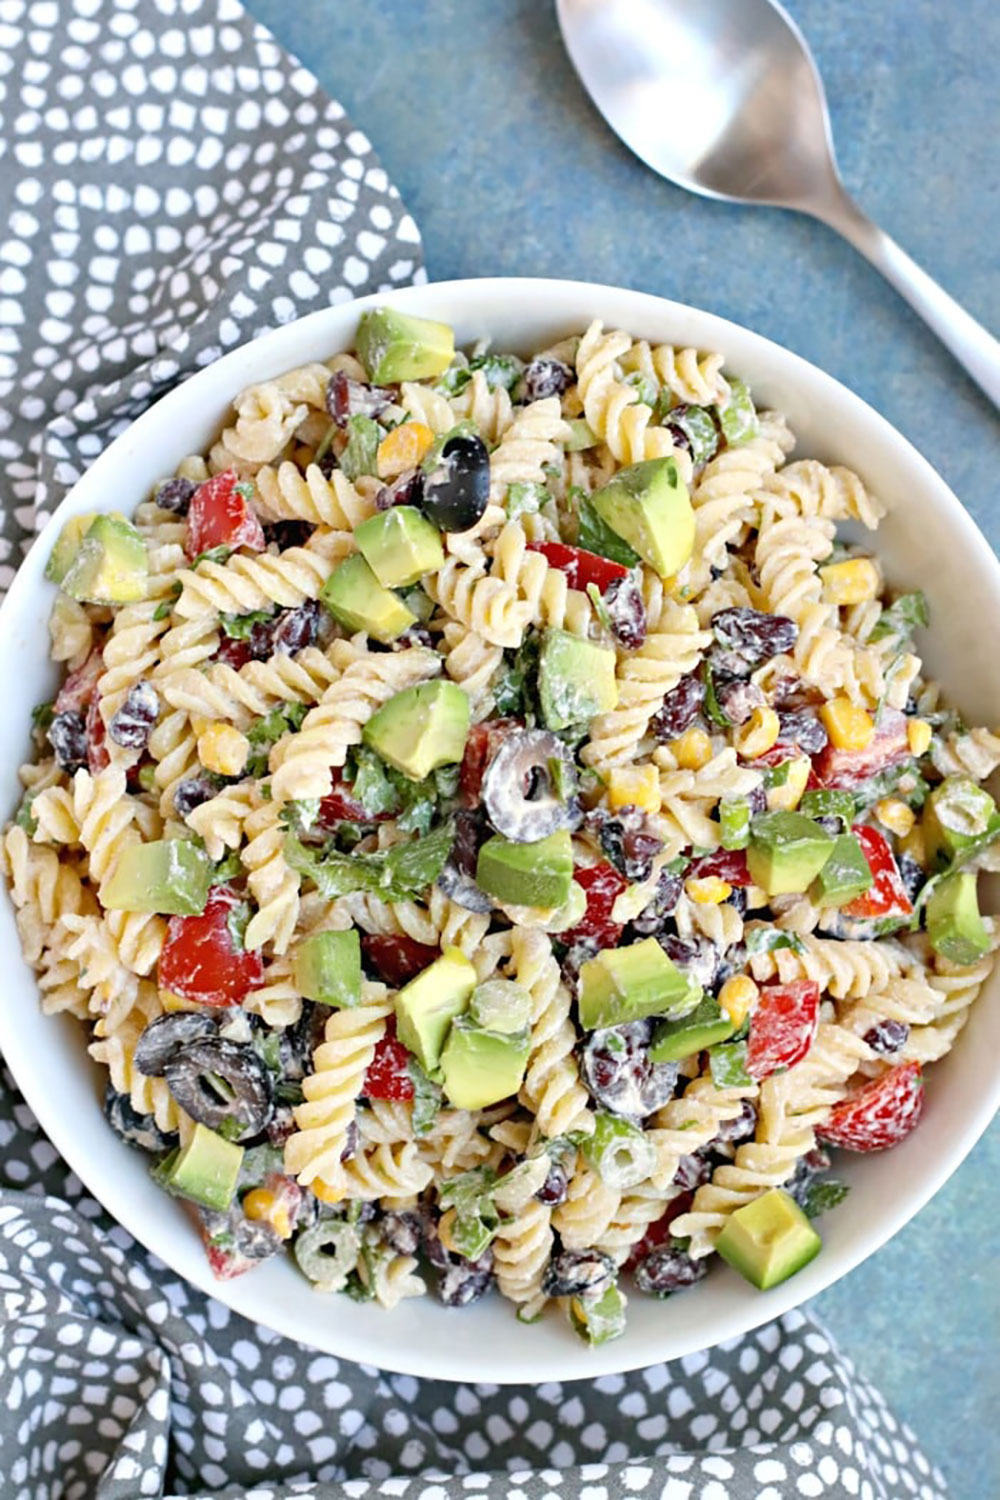 Southwest Pasta Salad with avocado, black beans, cherry tomatoes, corn